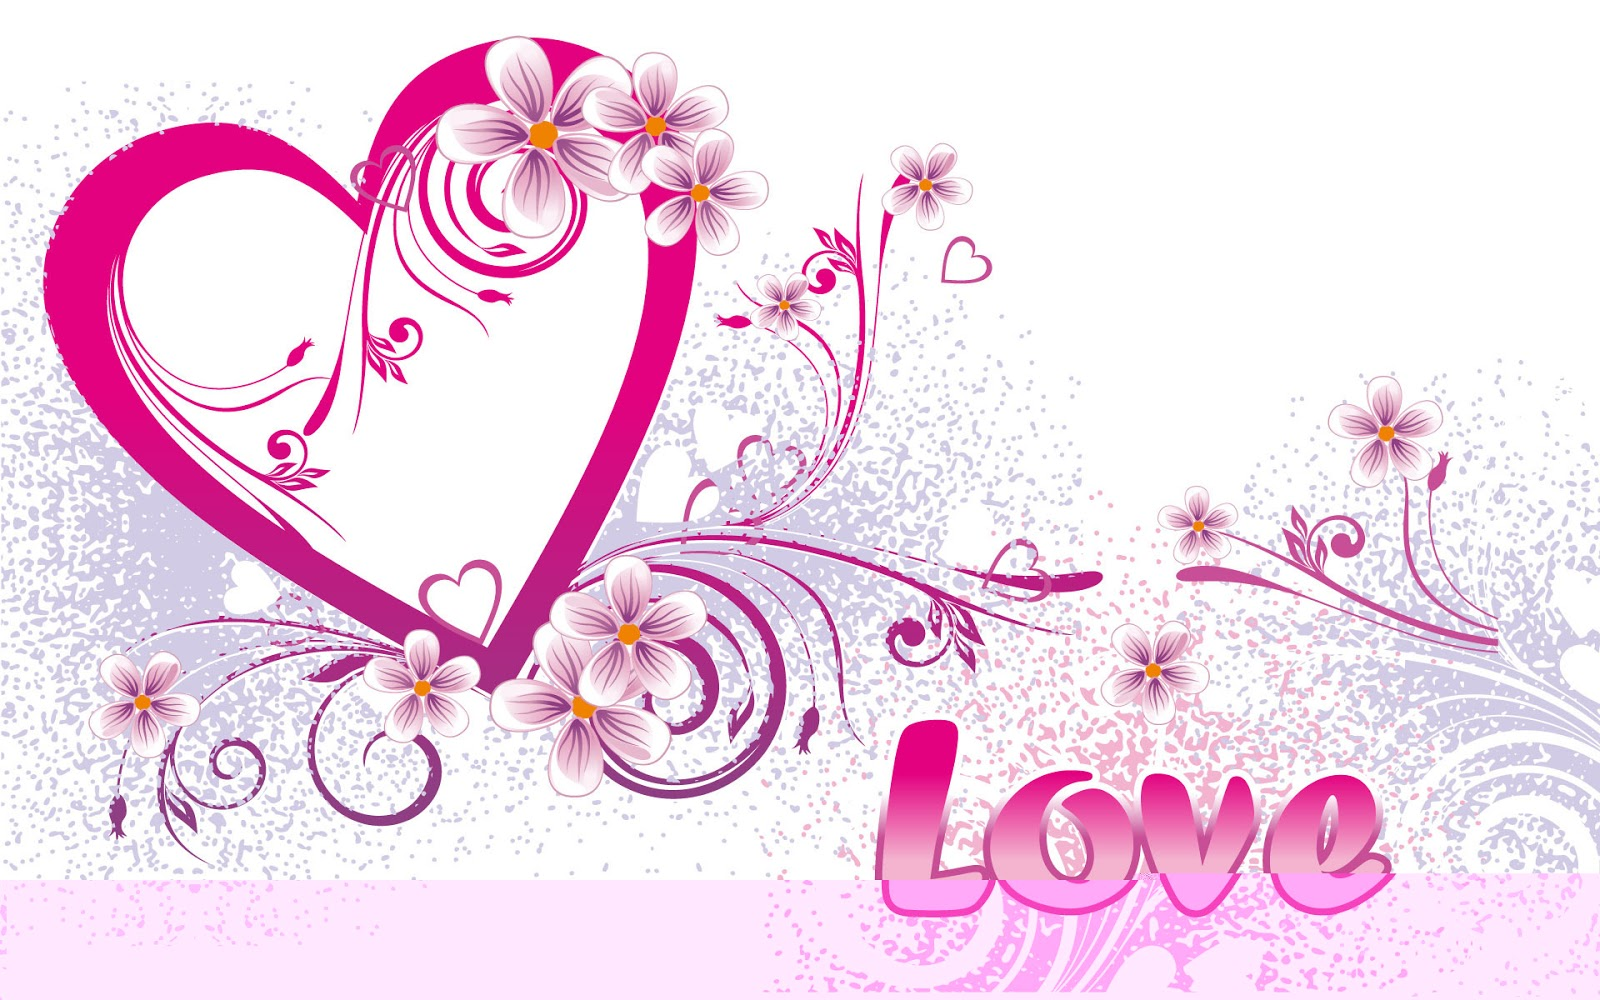 Wallpaper Backgrounds: Cute Heart and Love Wallpapers with Different ...